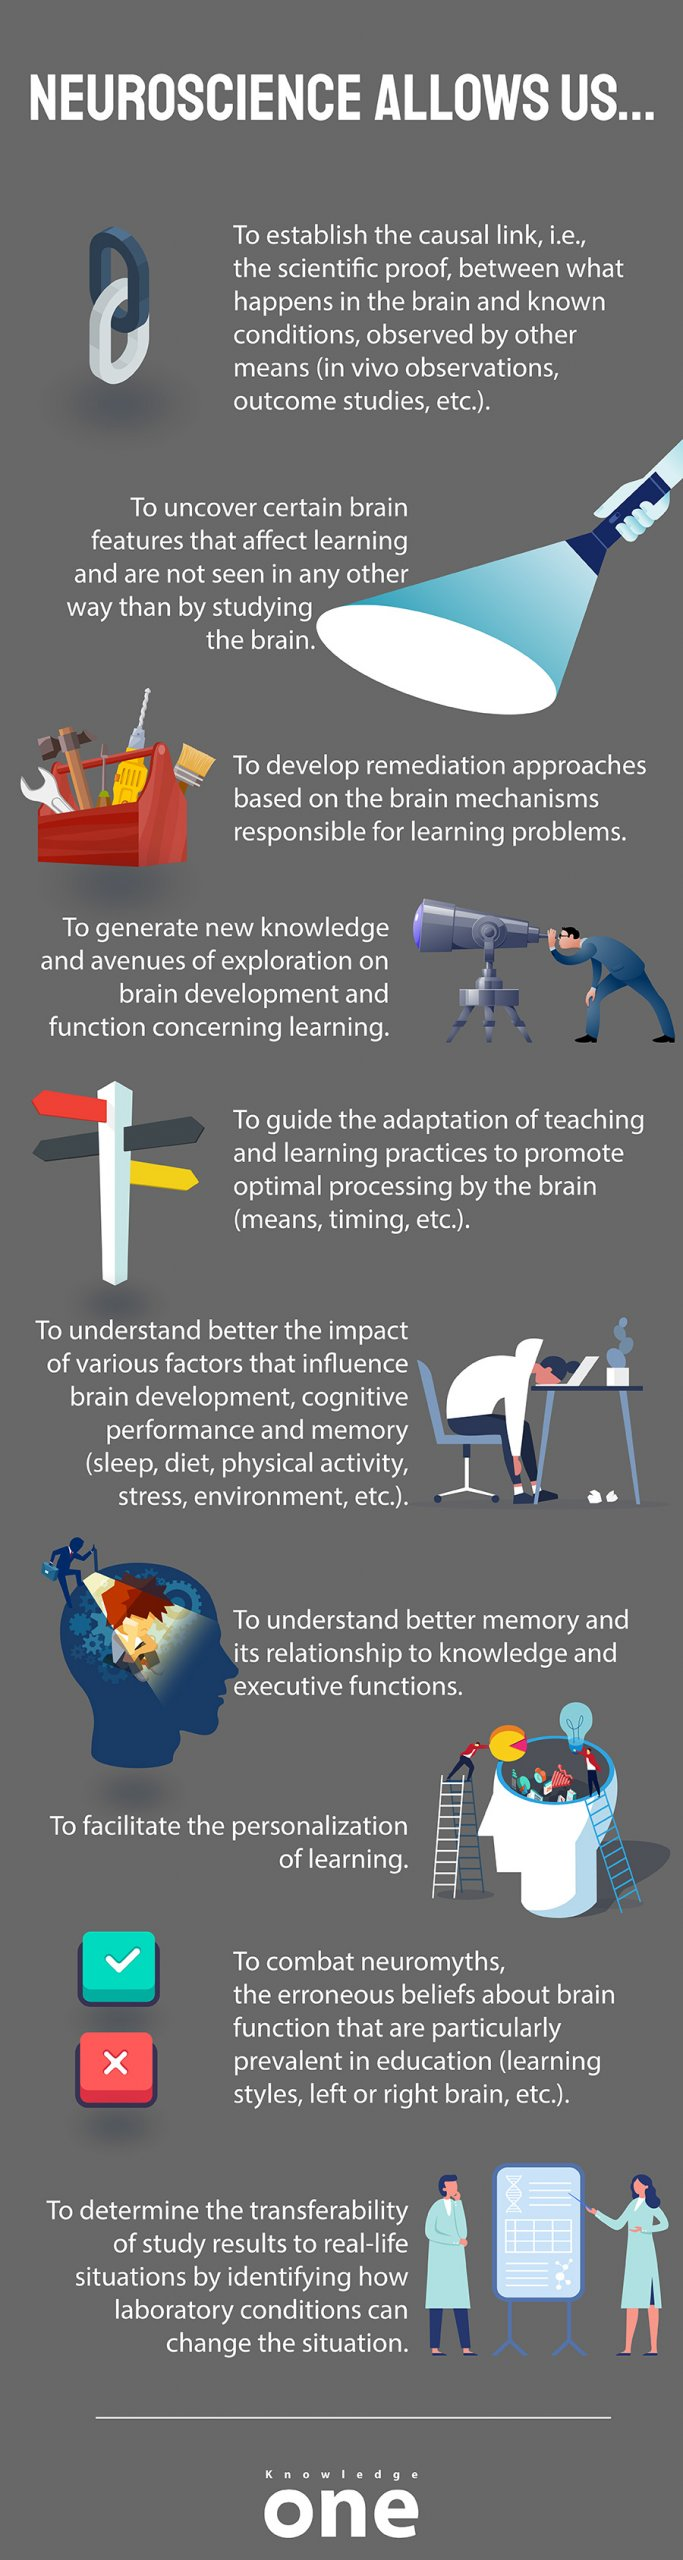 Infographic on the benefits of neuroscience